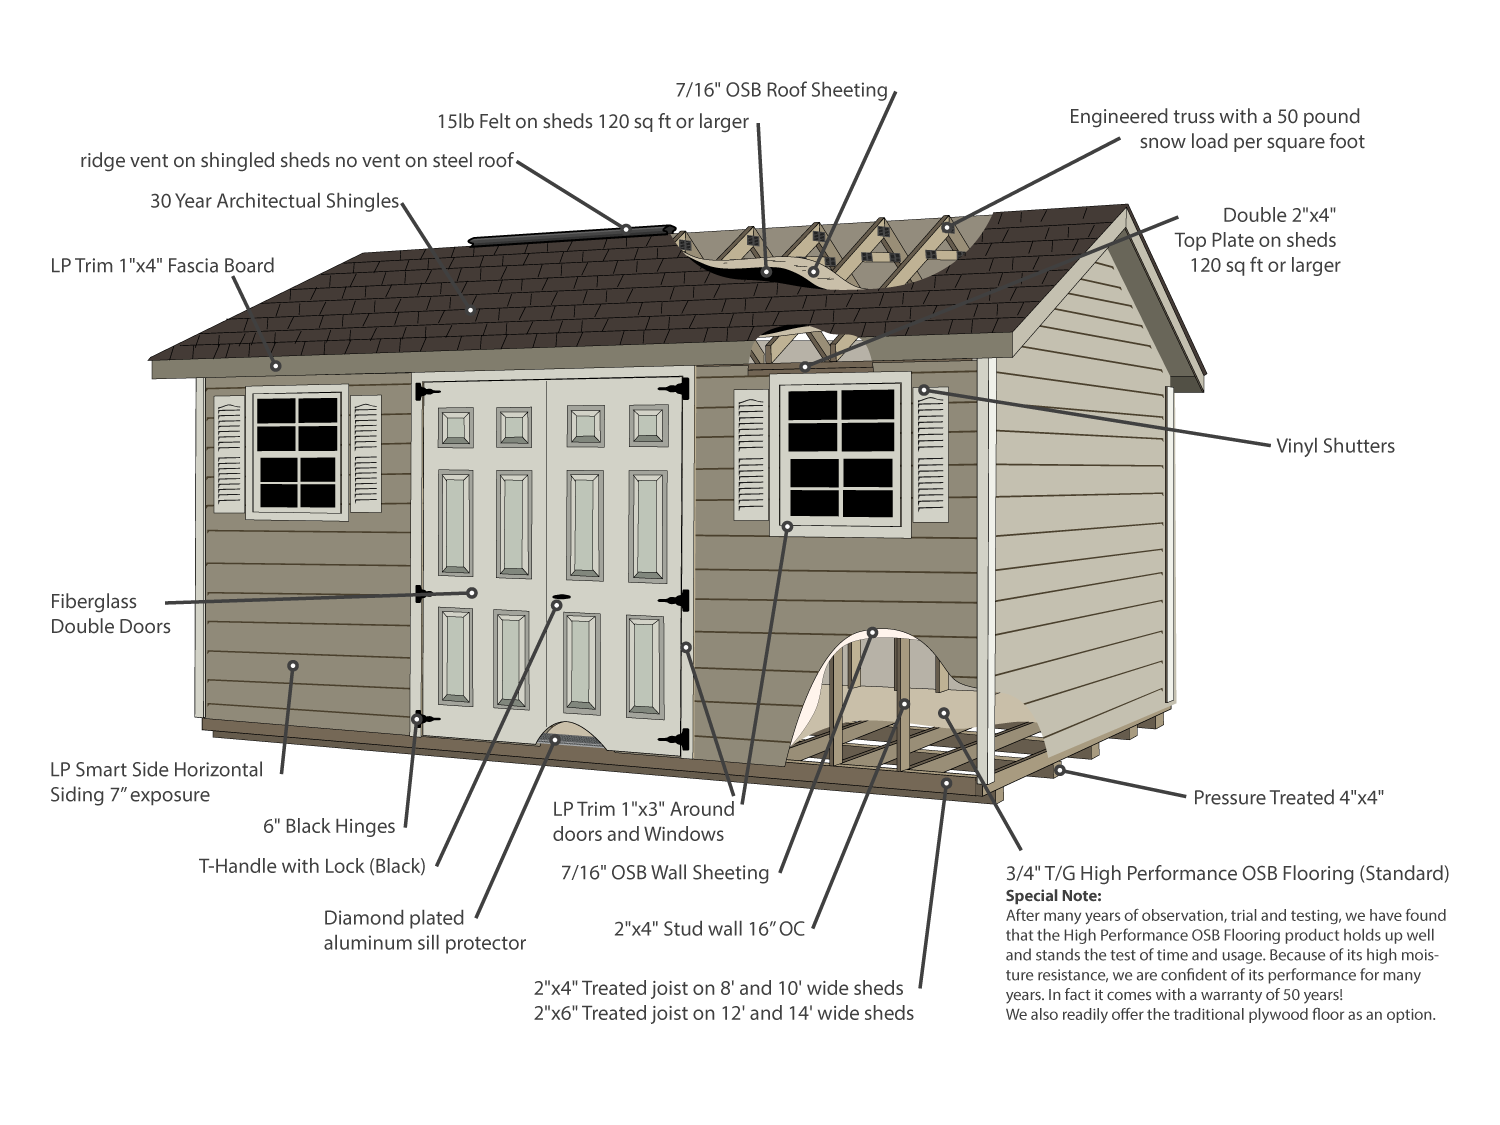 Storage Shed Building Plans 12x16 Gable Shed Plans Building A Shed Shed Building Plans Barns Sheds